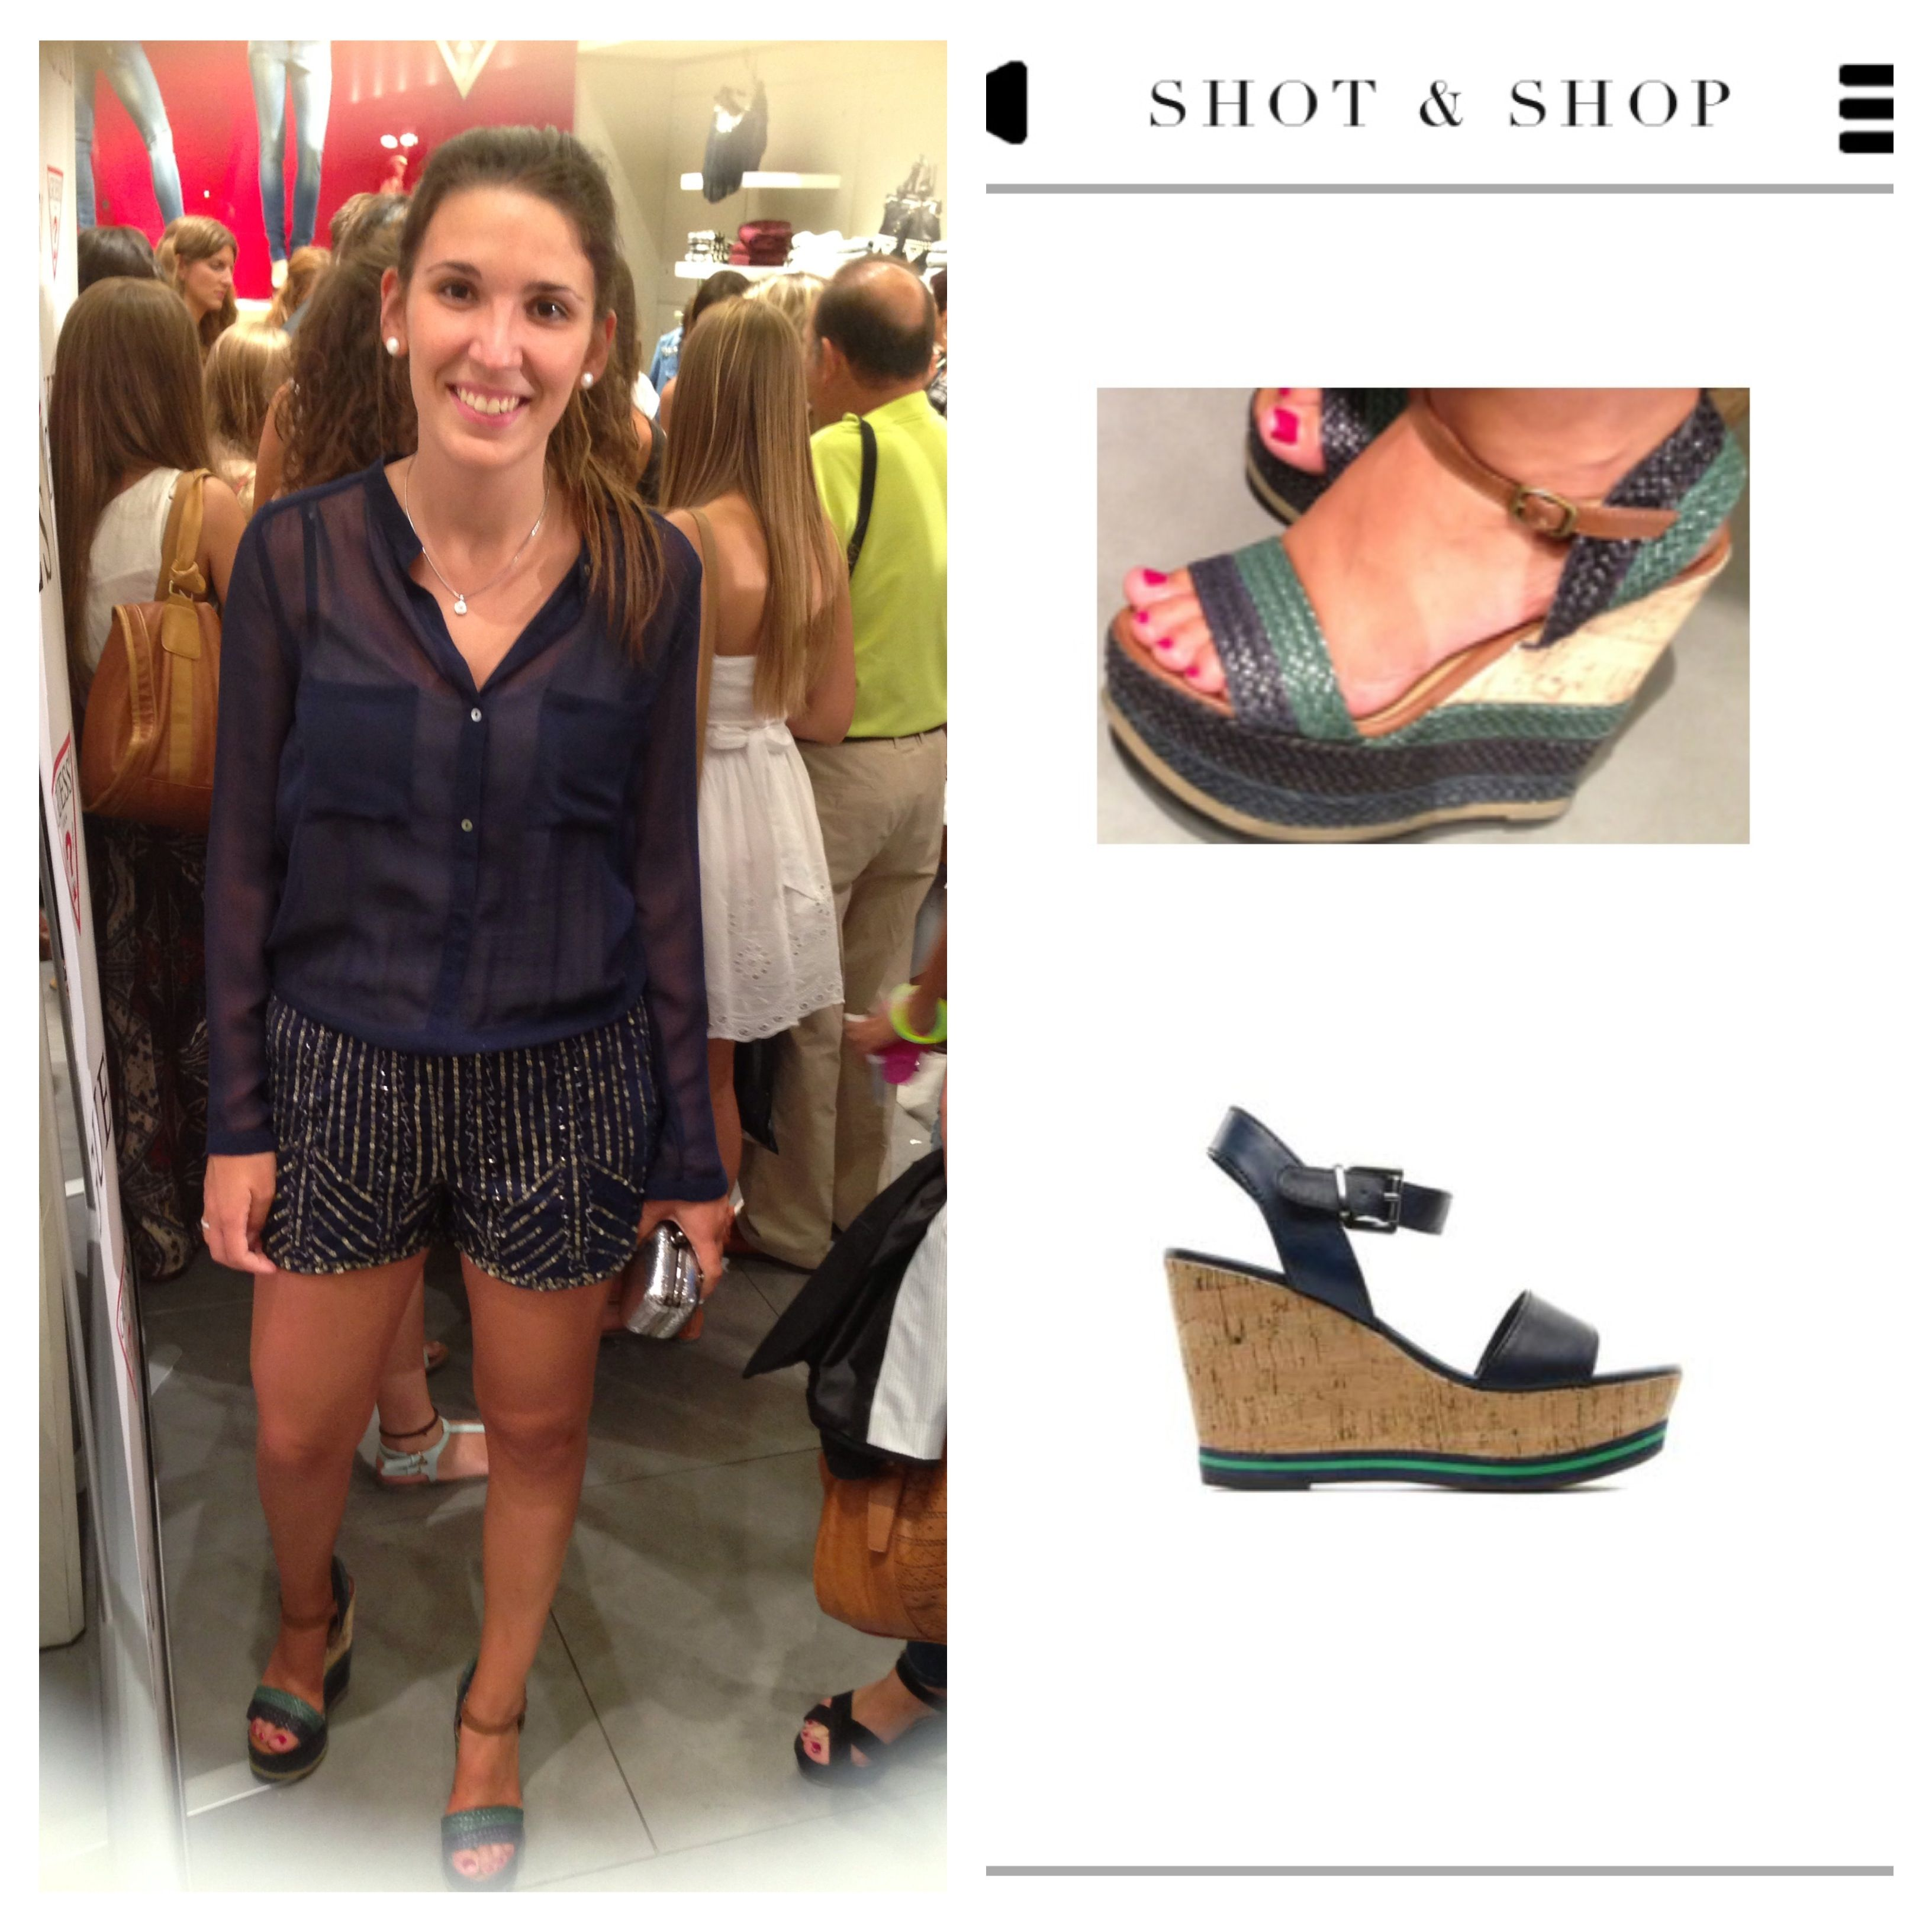 Similar wedges found with SNS in #VFNO #streetstyle Get the app: https://itunes.apple.com/es/app/shot-shop/id698170589?mt=8